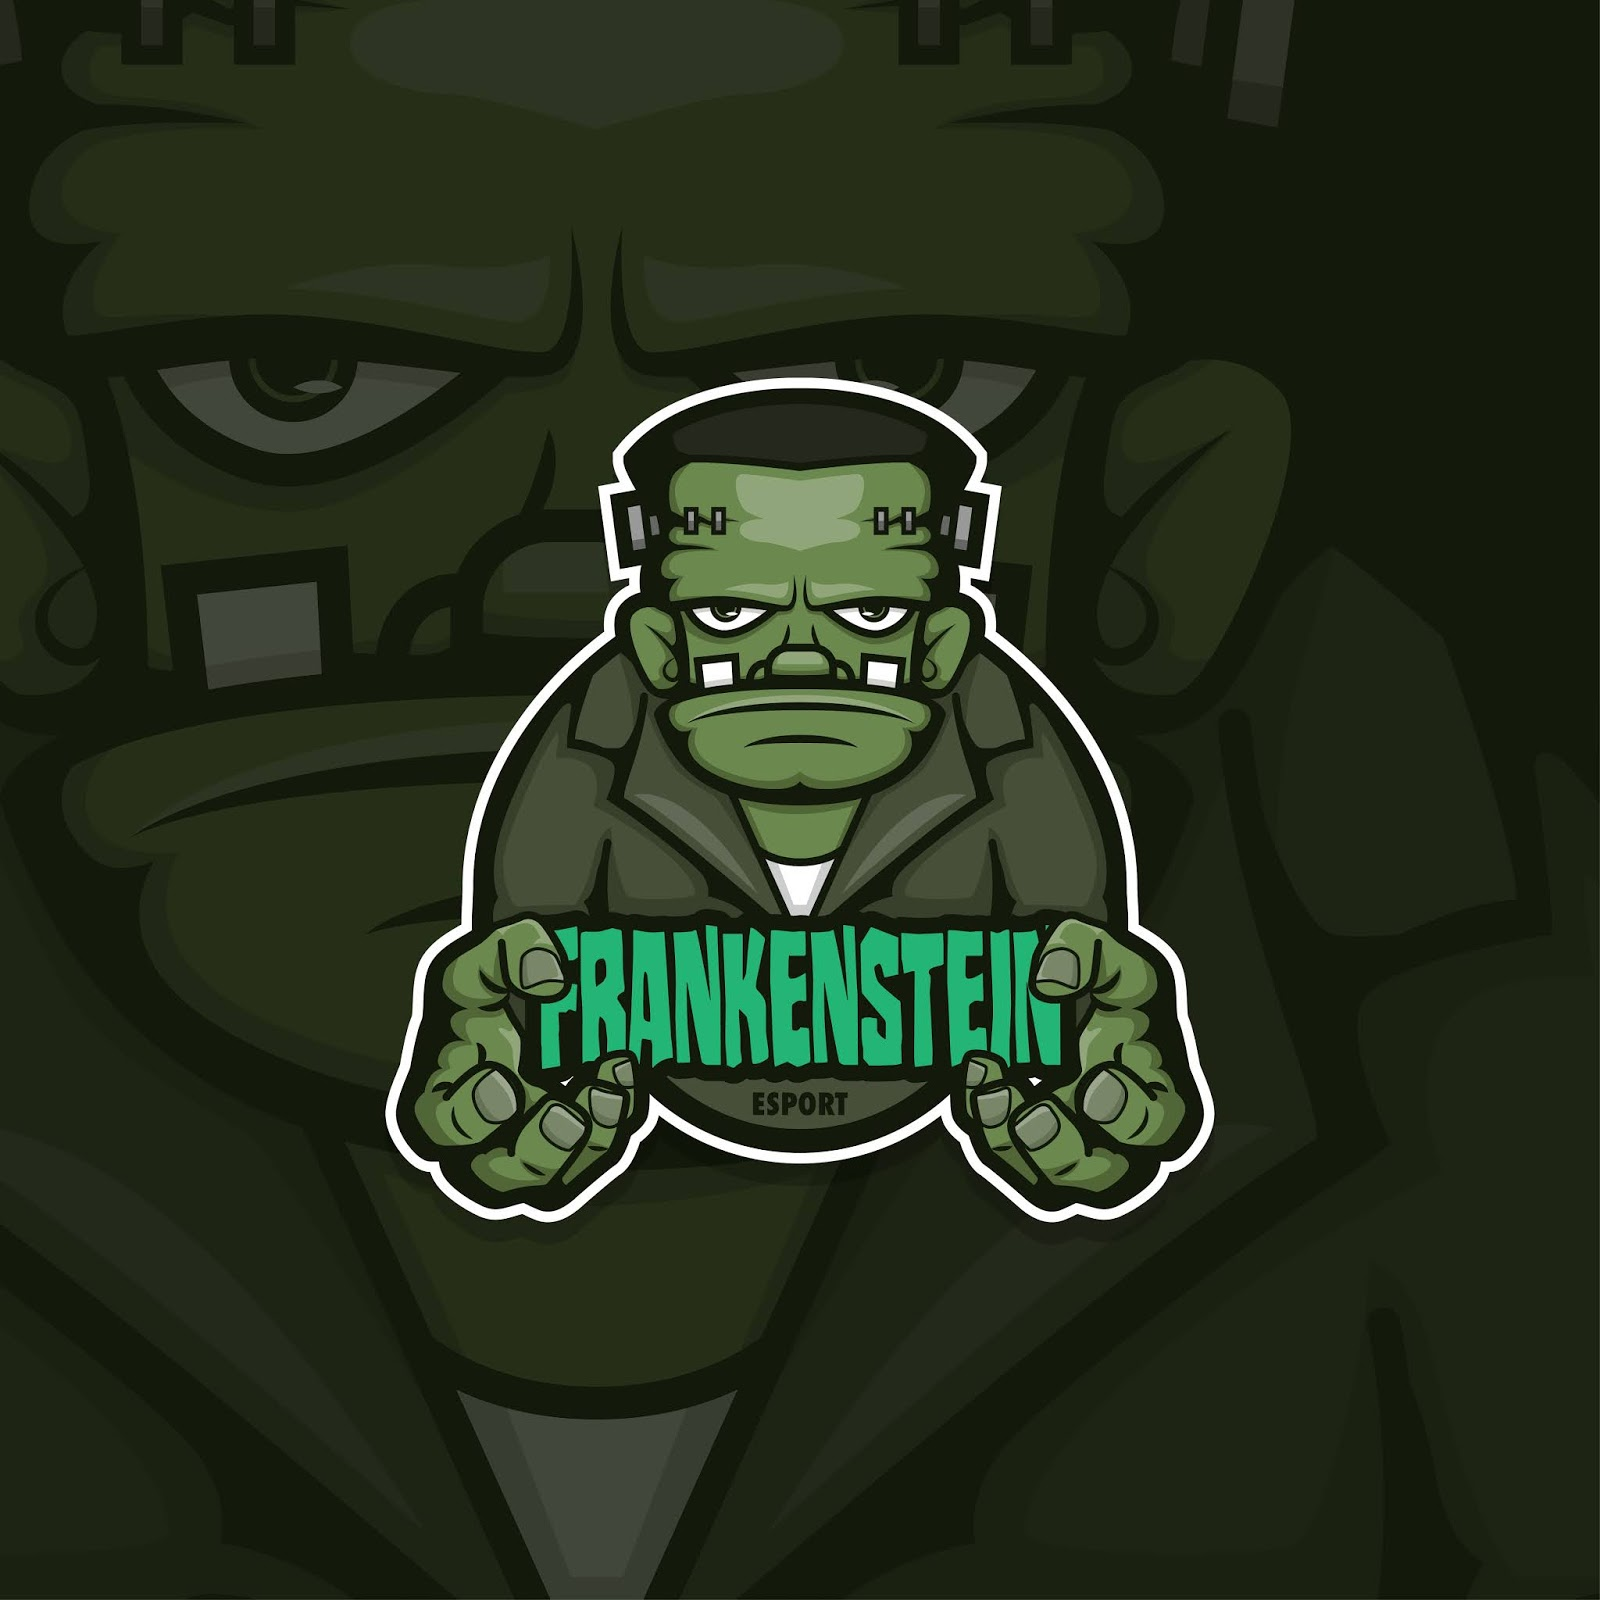 Esport Gamer Logo Frankenstein Free Download Vector CDR, AI, EPS and PNG Formats